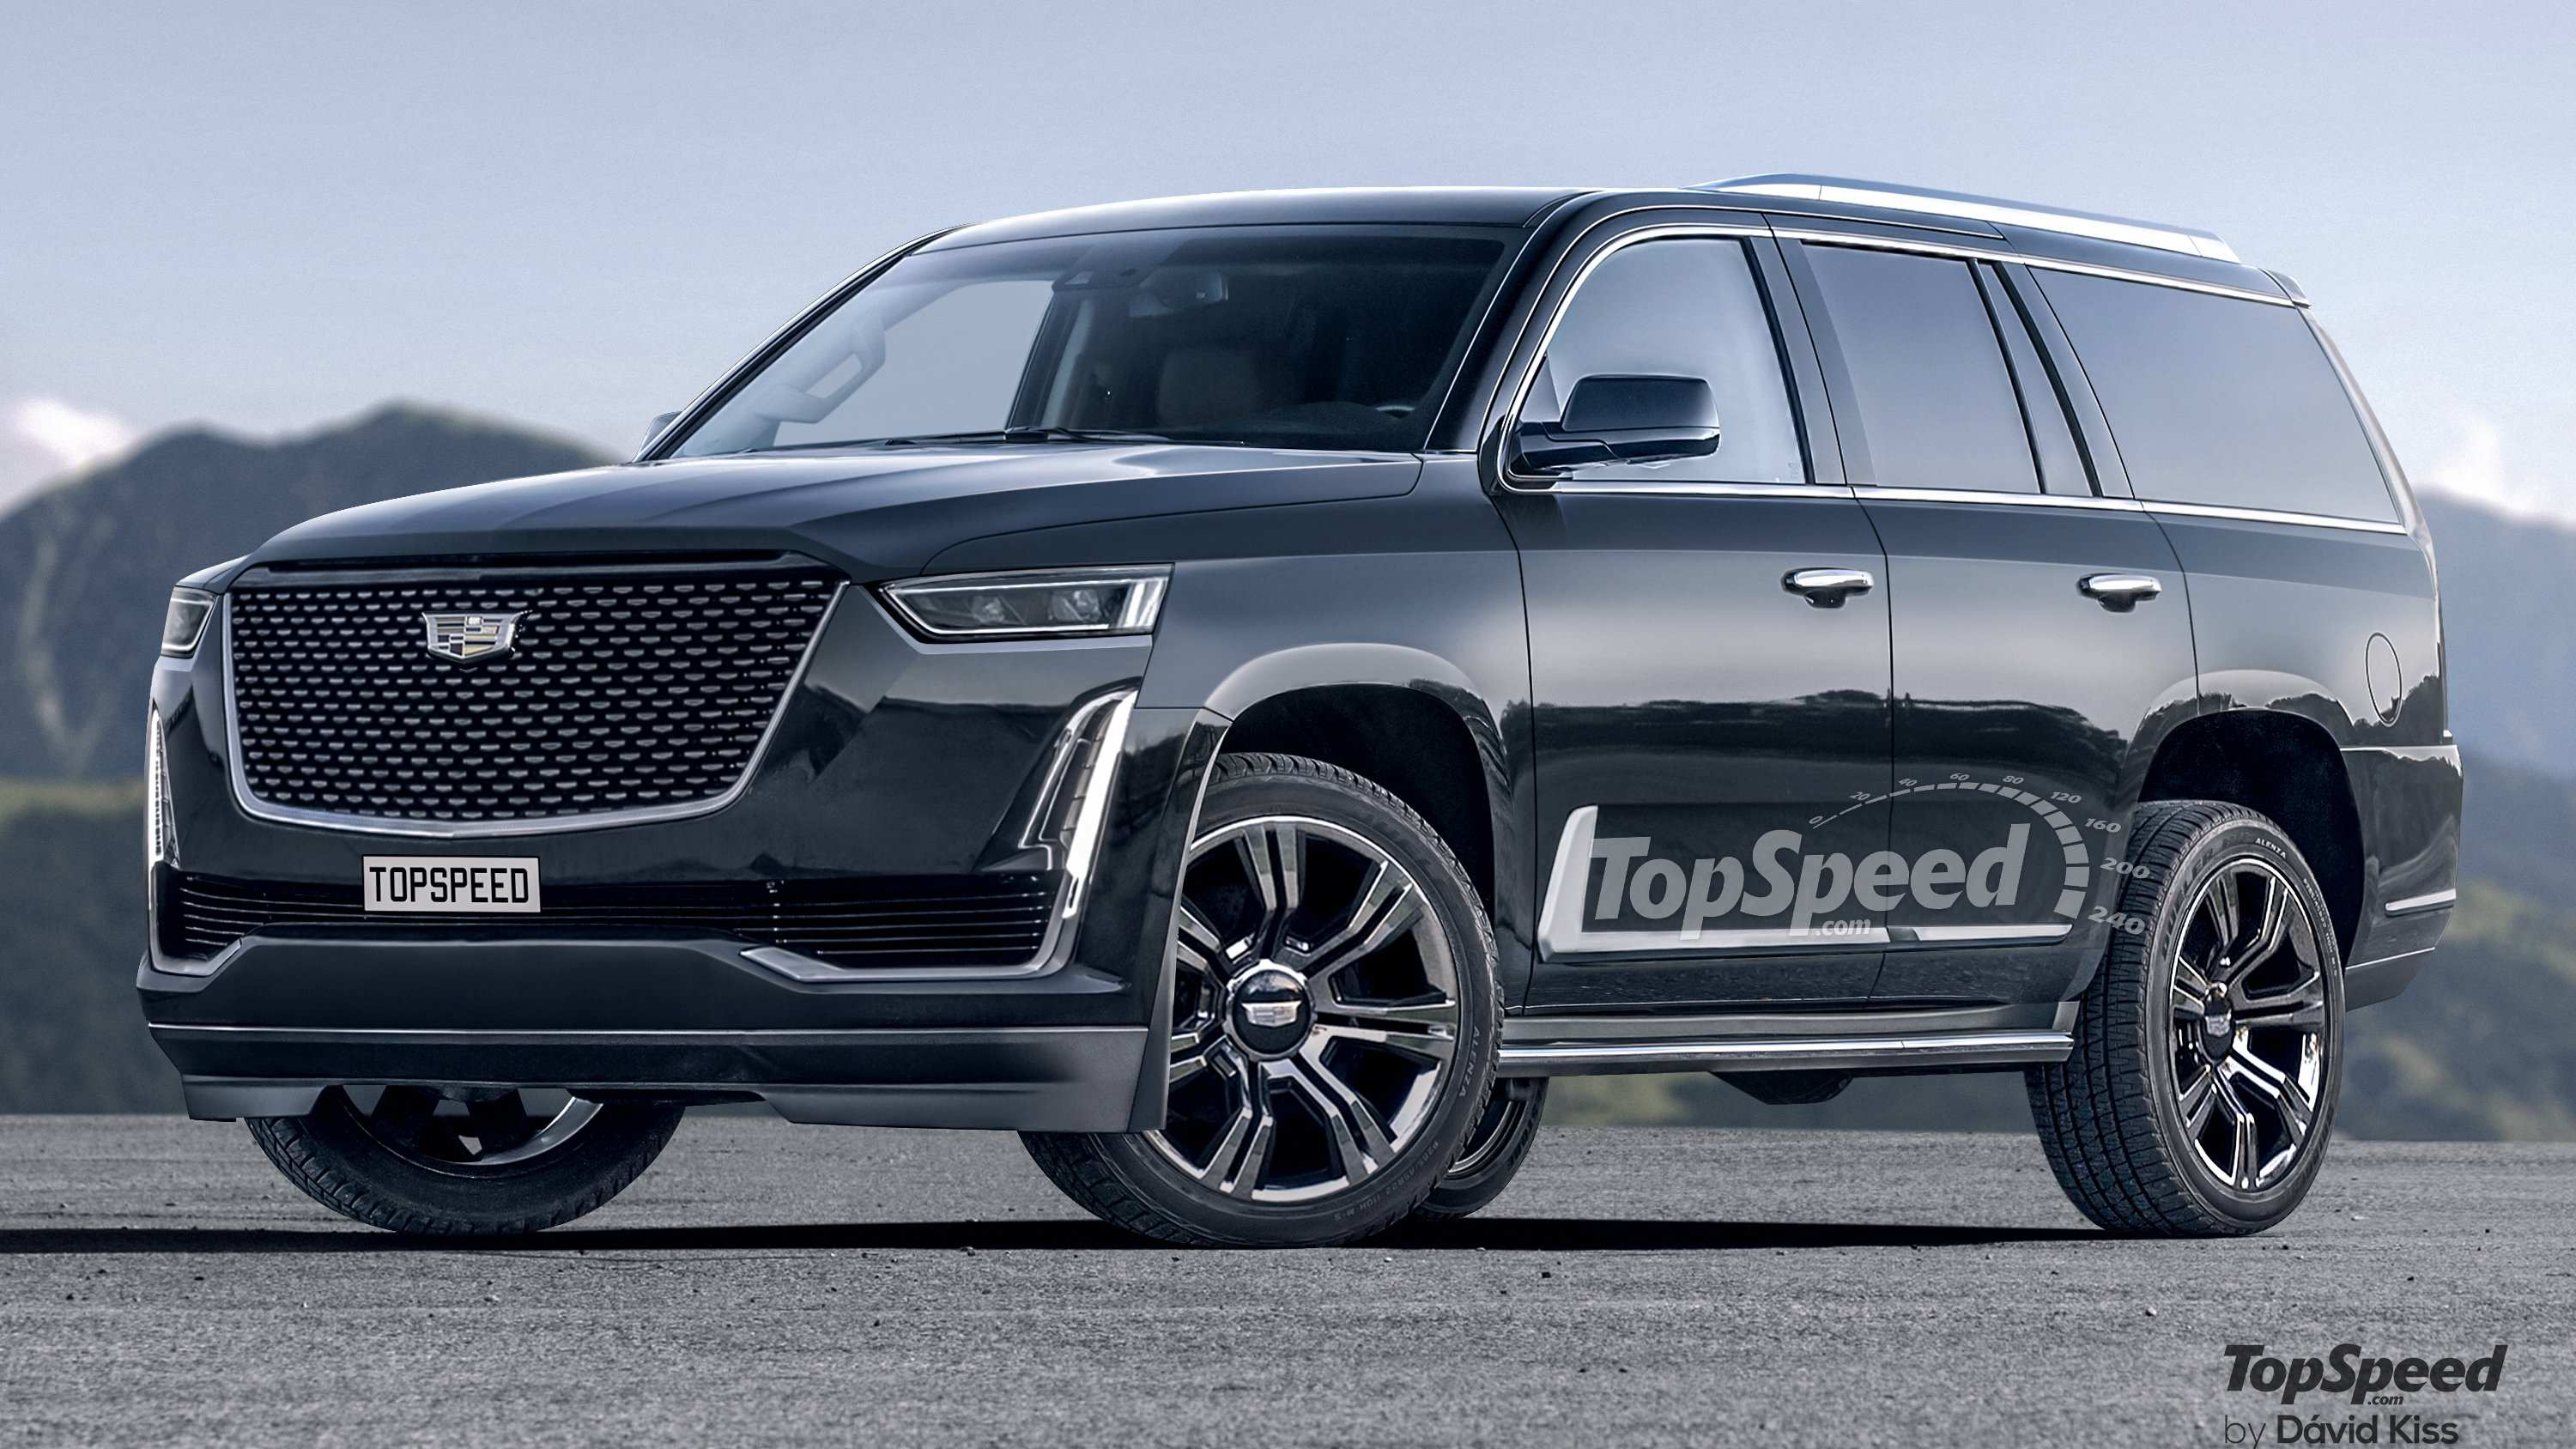 96 The 2019 Cadillac Srxspy Photos Spy Shoot with 2019 Cadillac Srxspy Photos